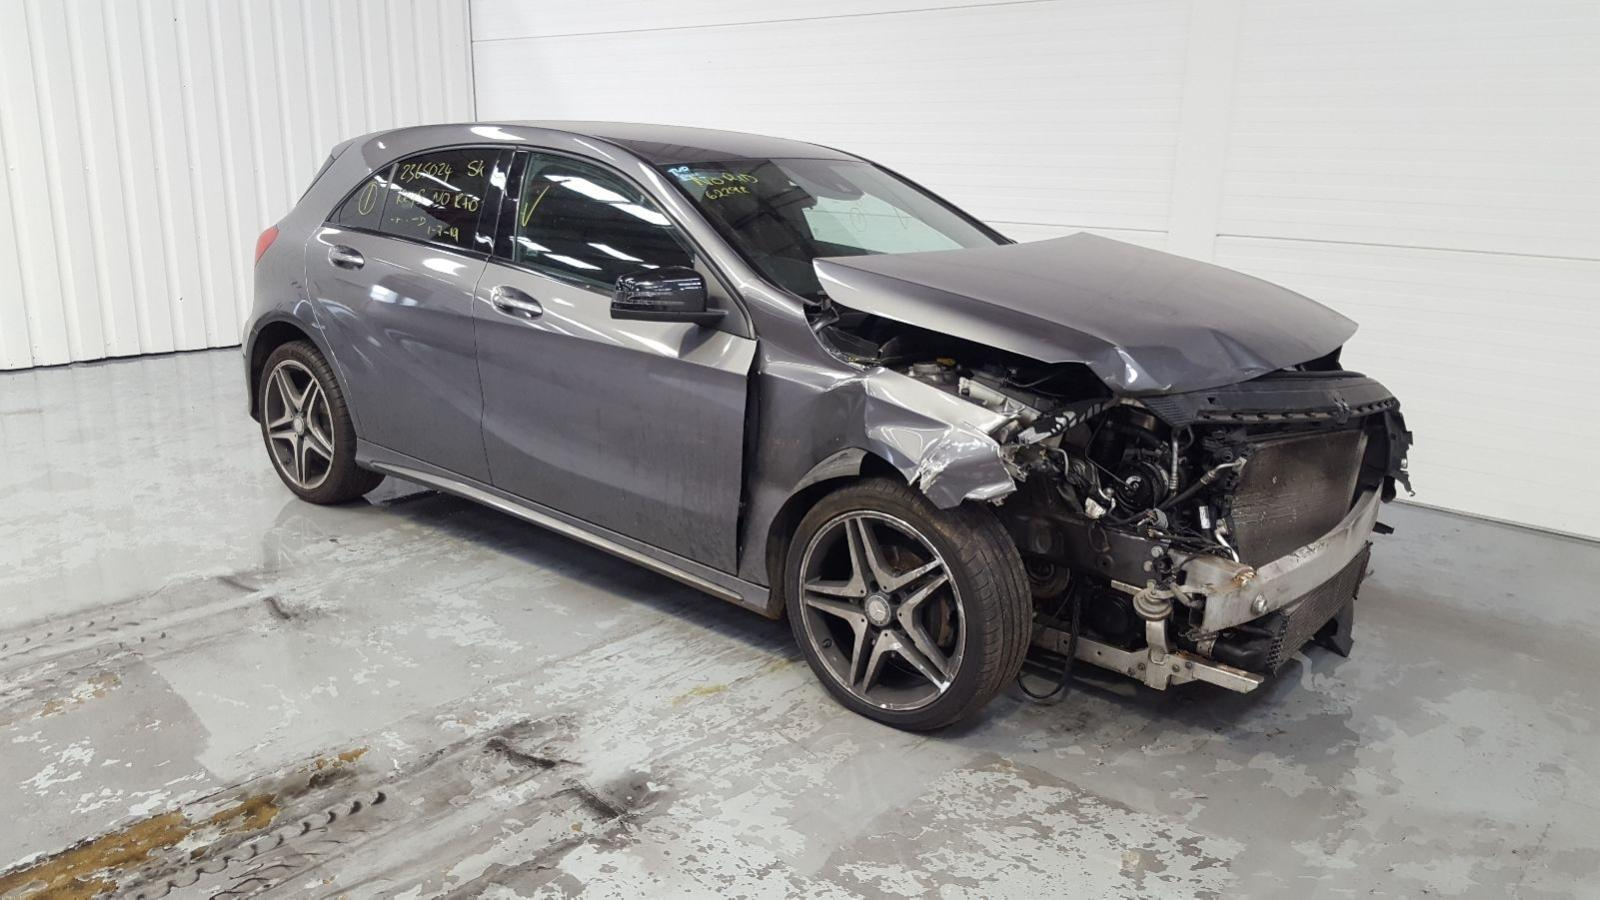 Image for a 2015 Mercedes A Class 2.1 Diesel OM651.930 Engine